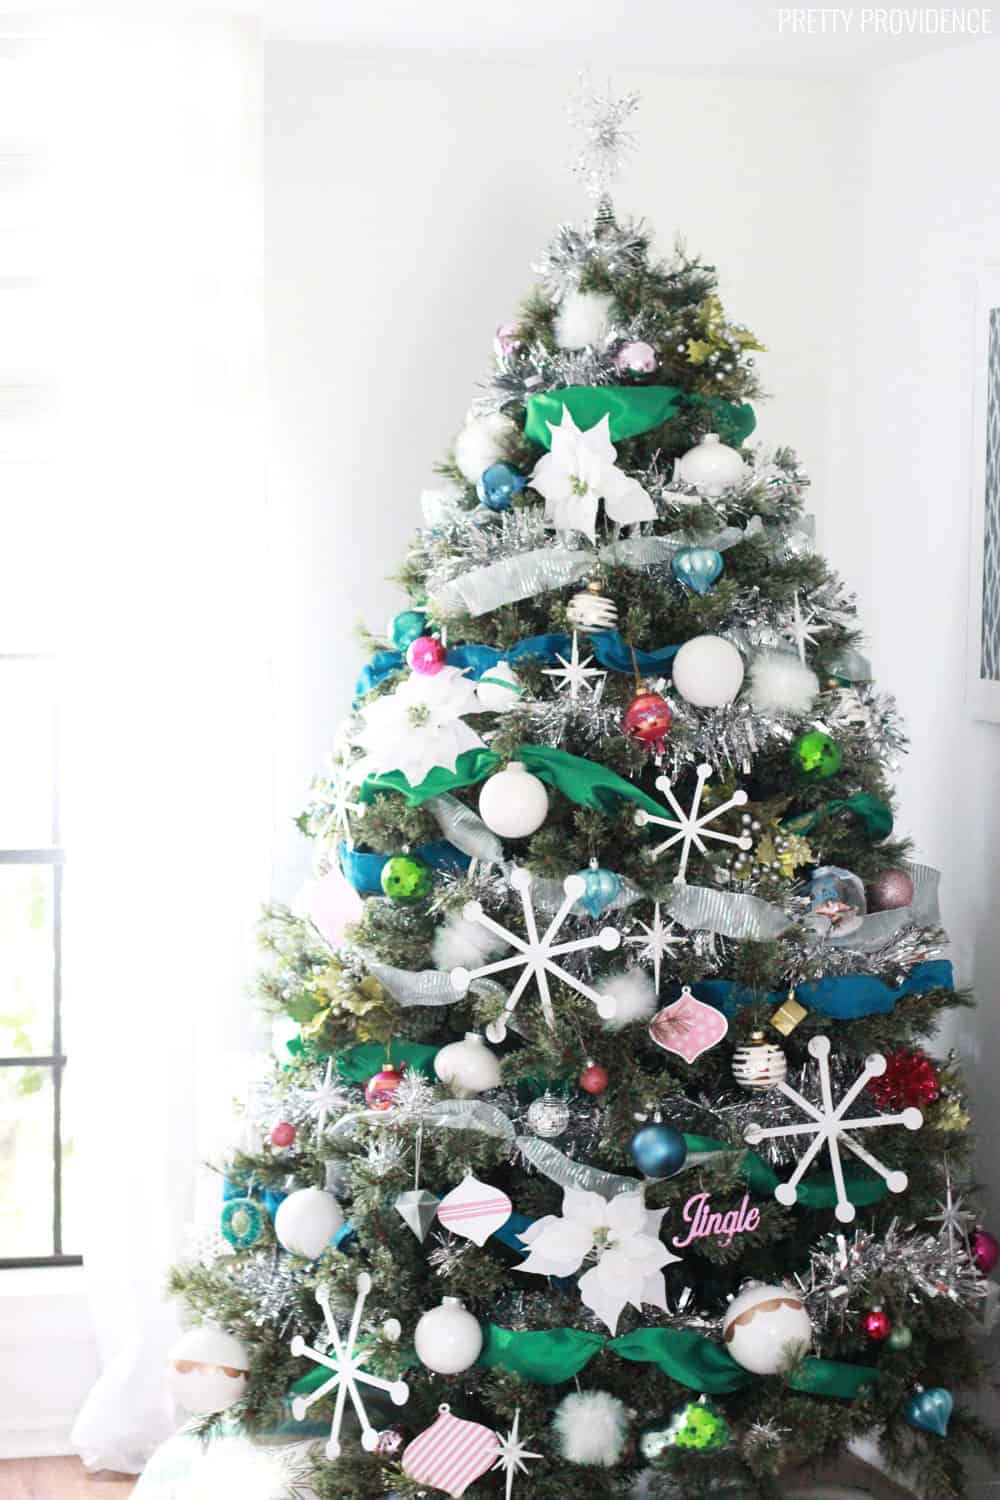 How to Decorate a Christmas Tree - Tips and Tricks